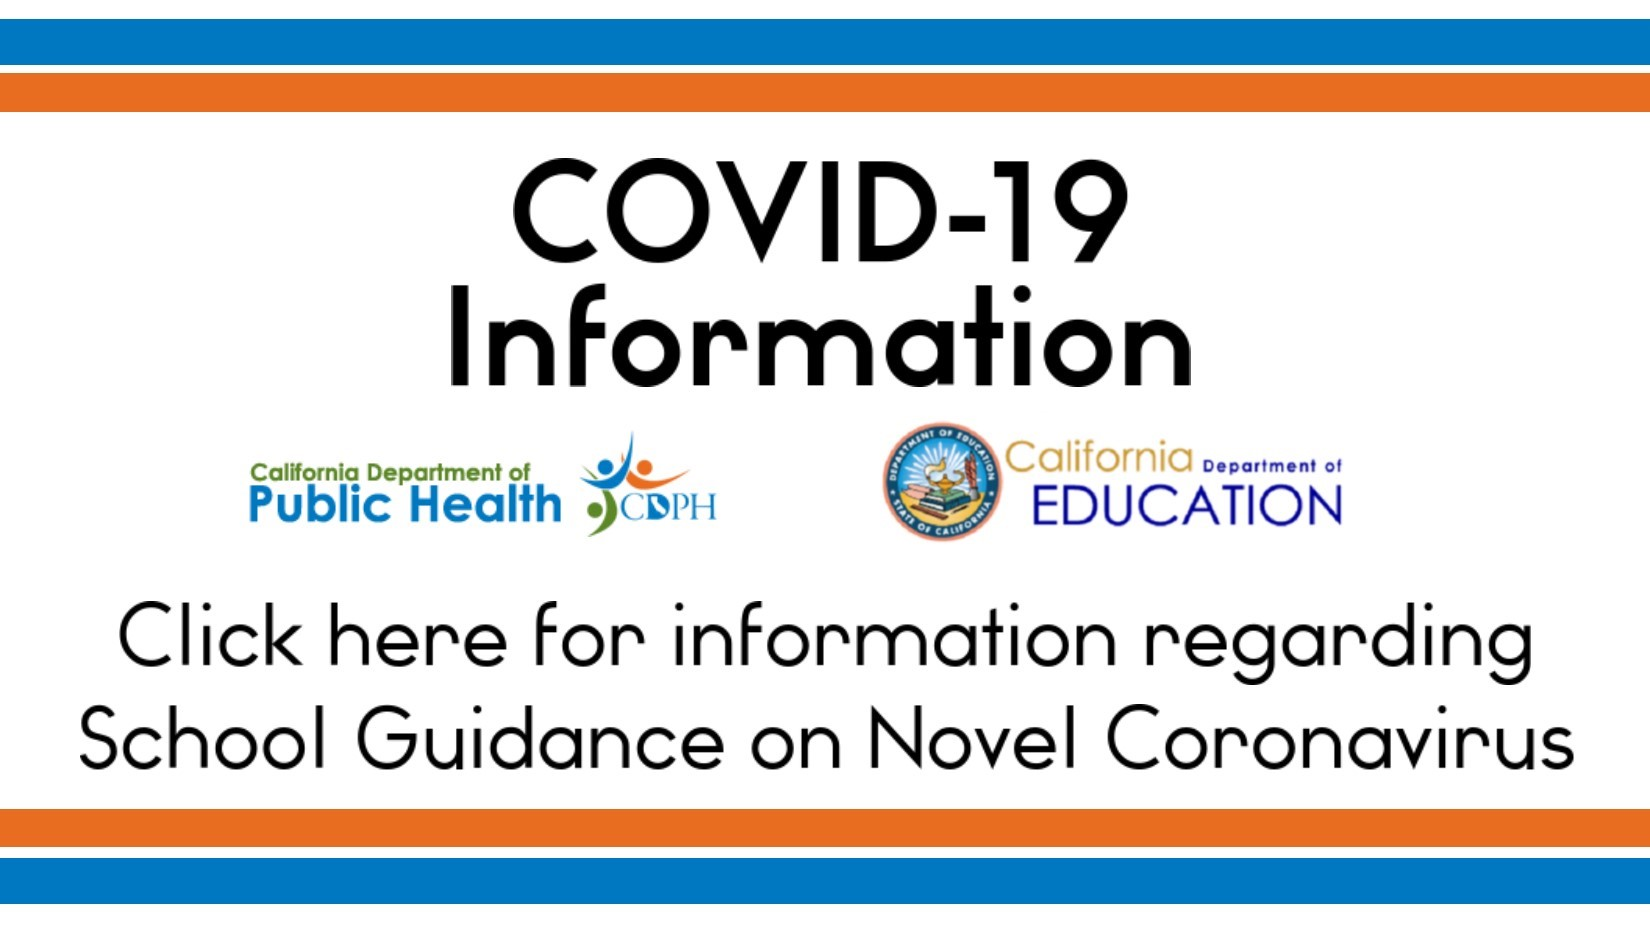 COVID 19 health department information